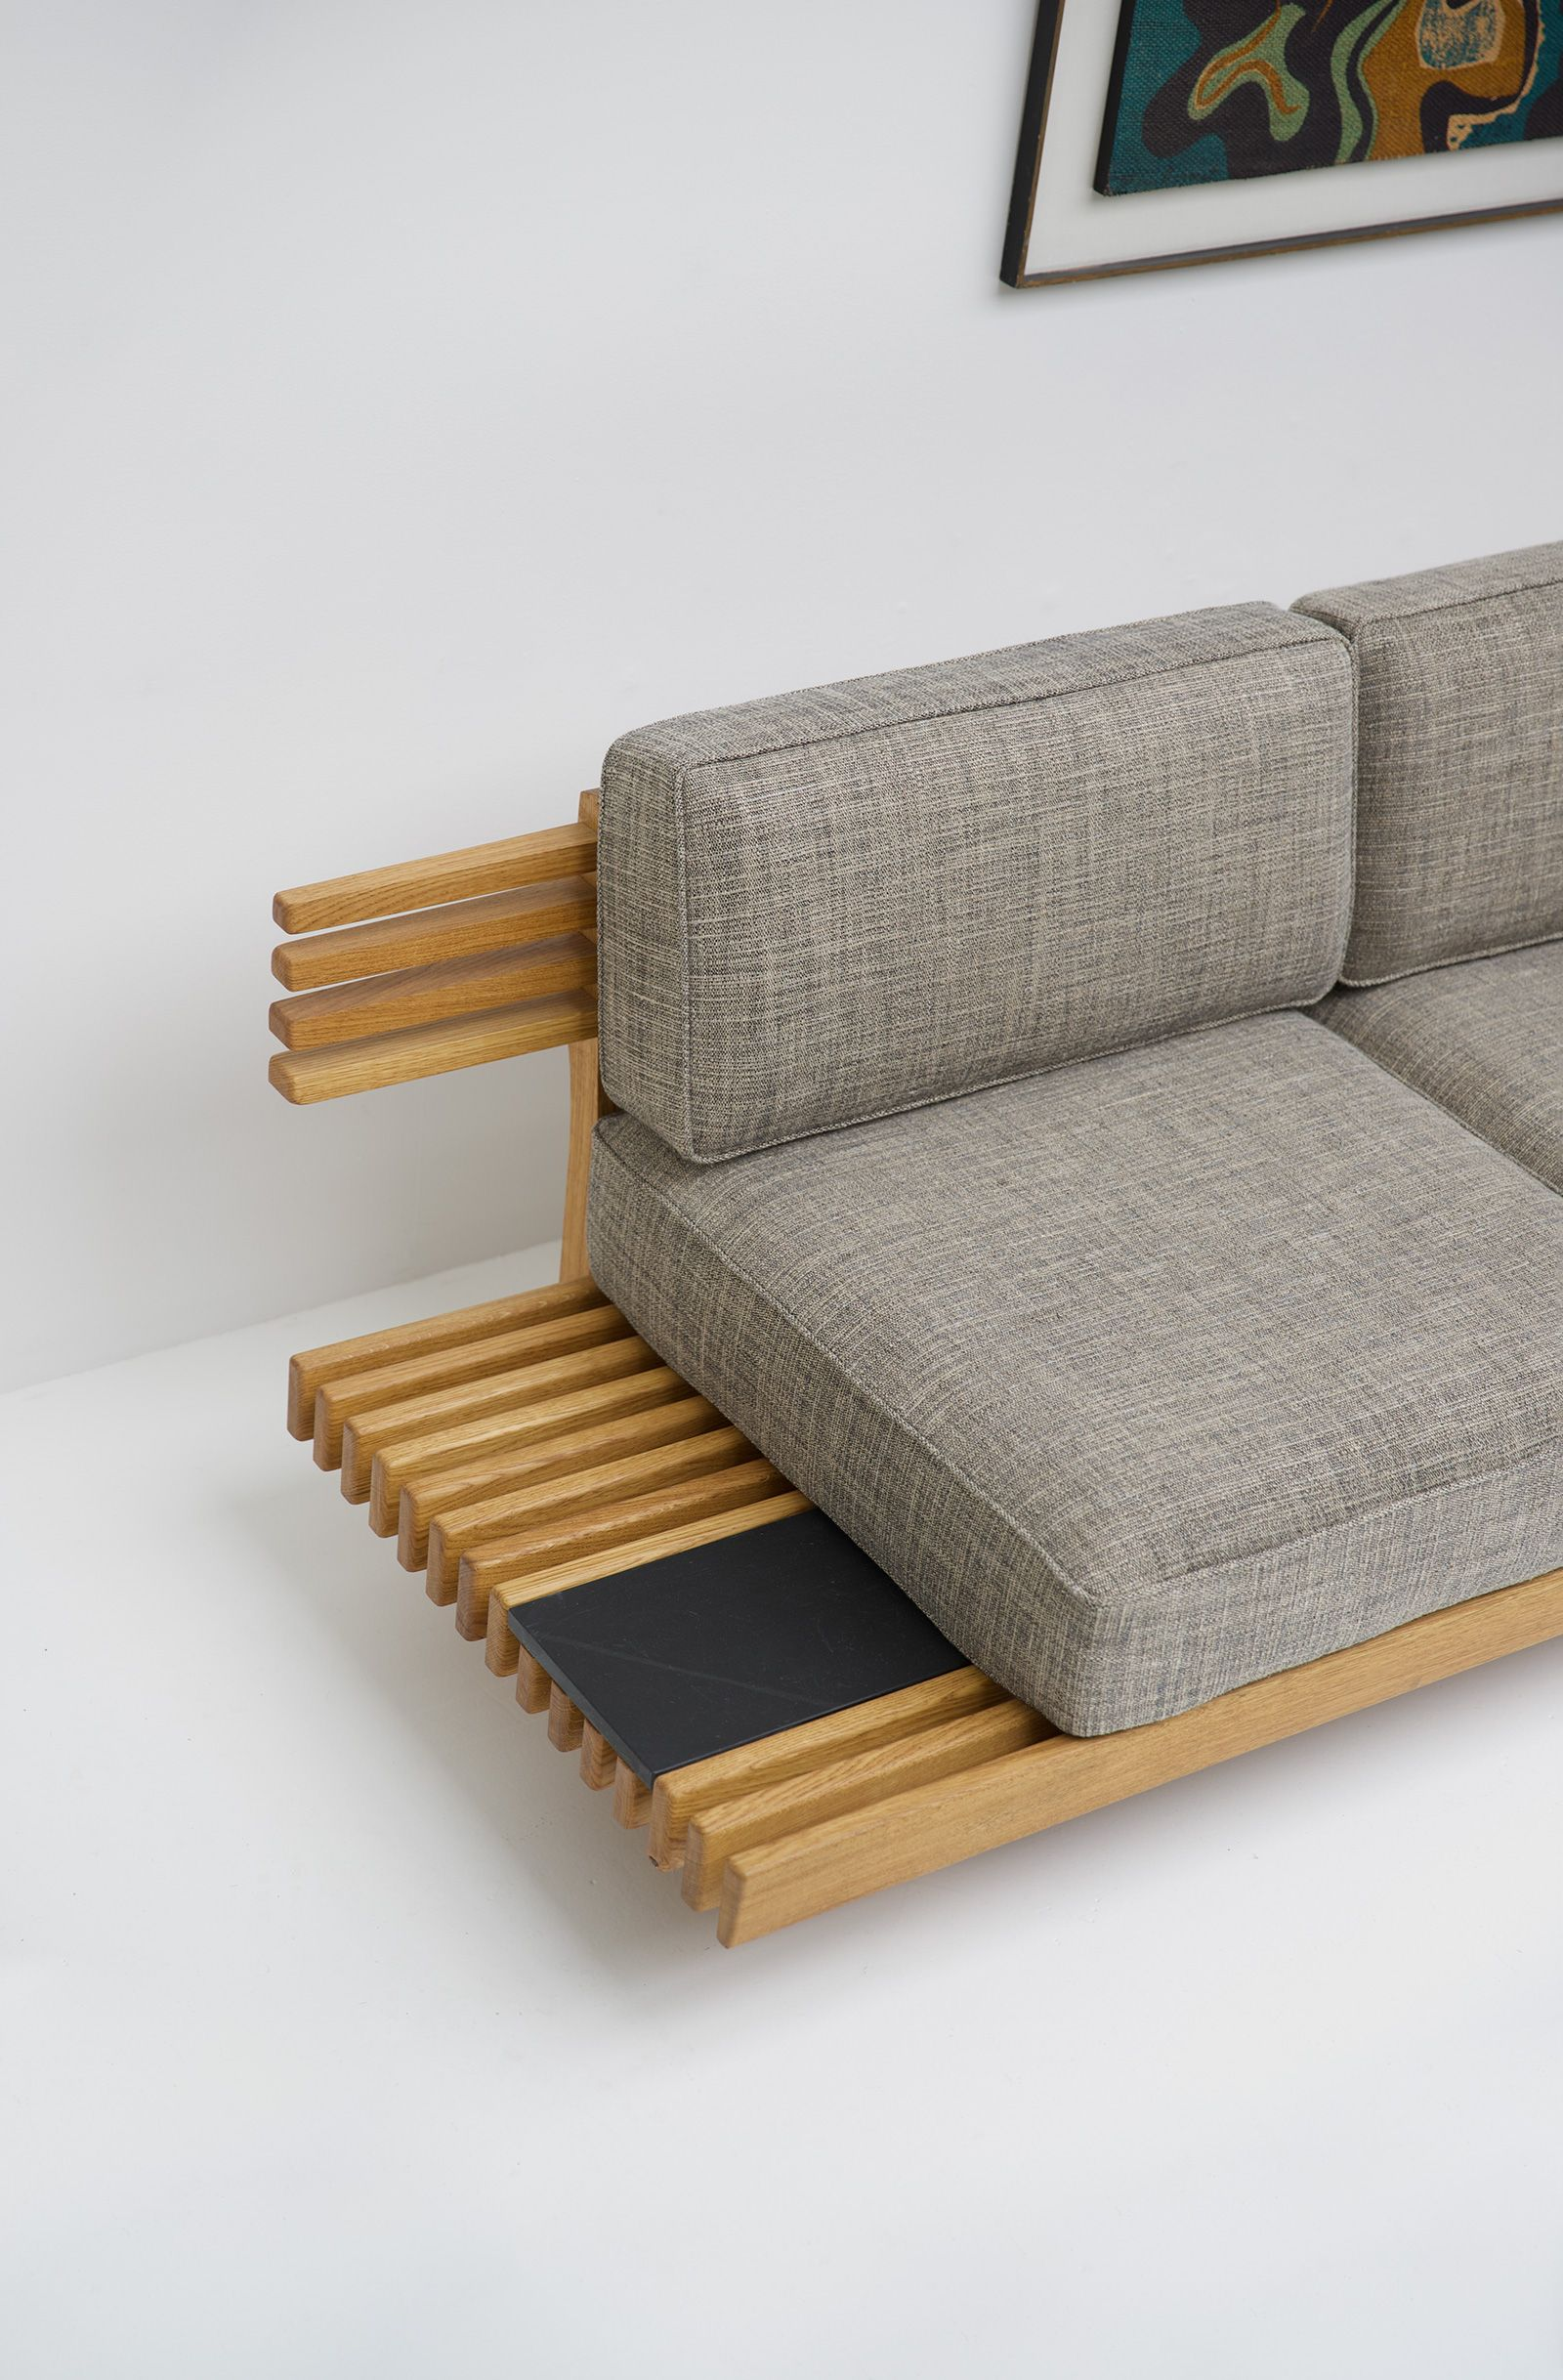 City Furniture Online Gallery For Vintage And Design In 2020